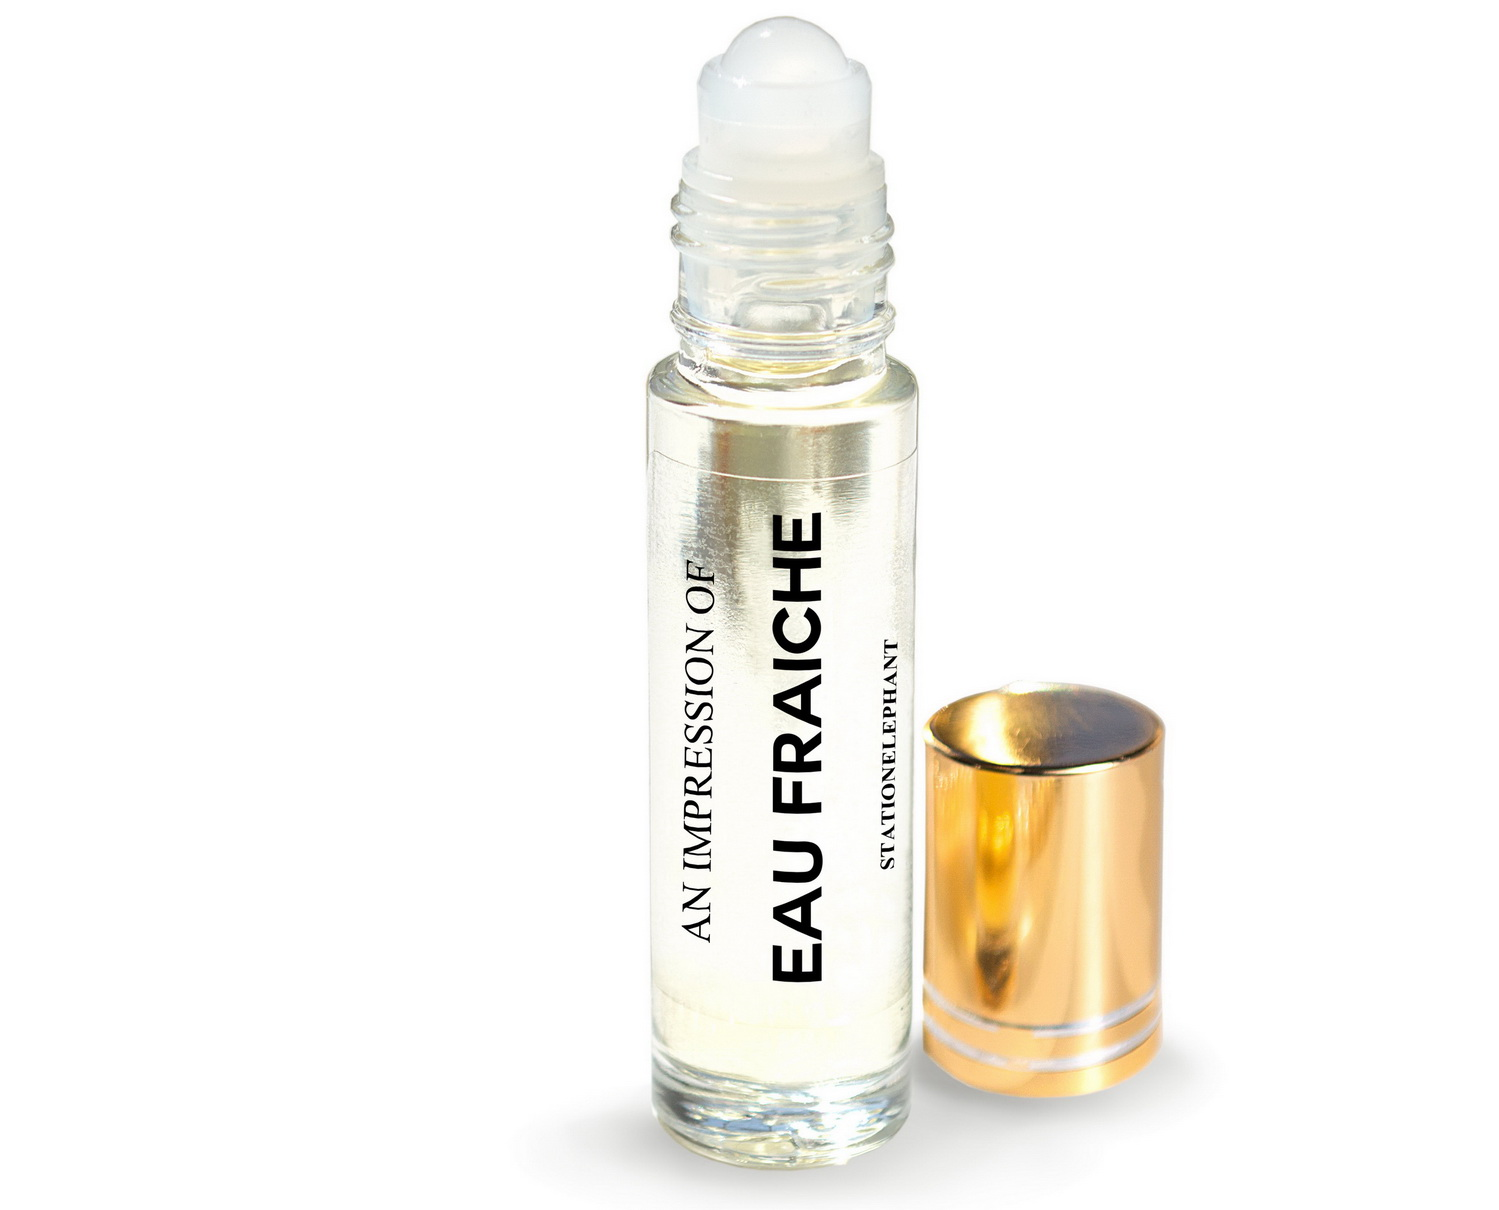 Chance eau fraiche type vegan perfume oil stationelephant for Chance eau fraîche